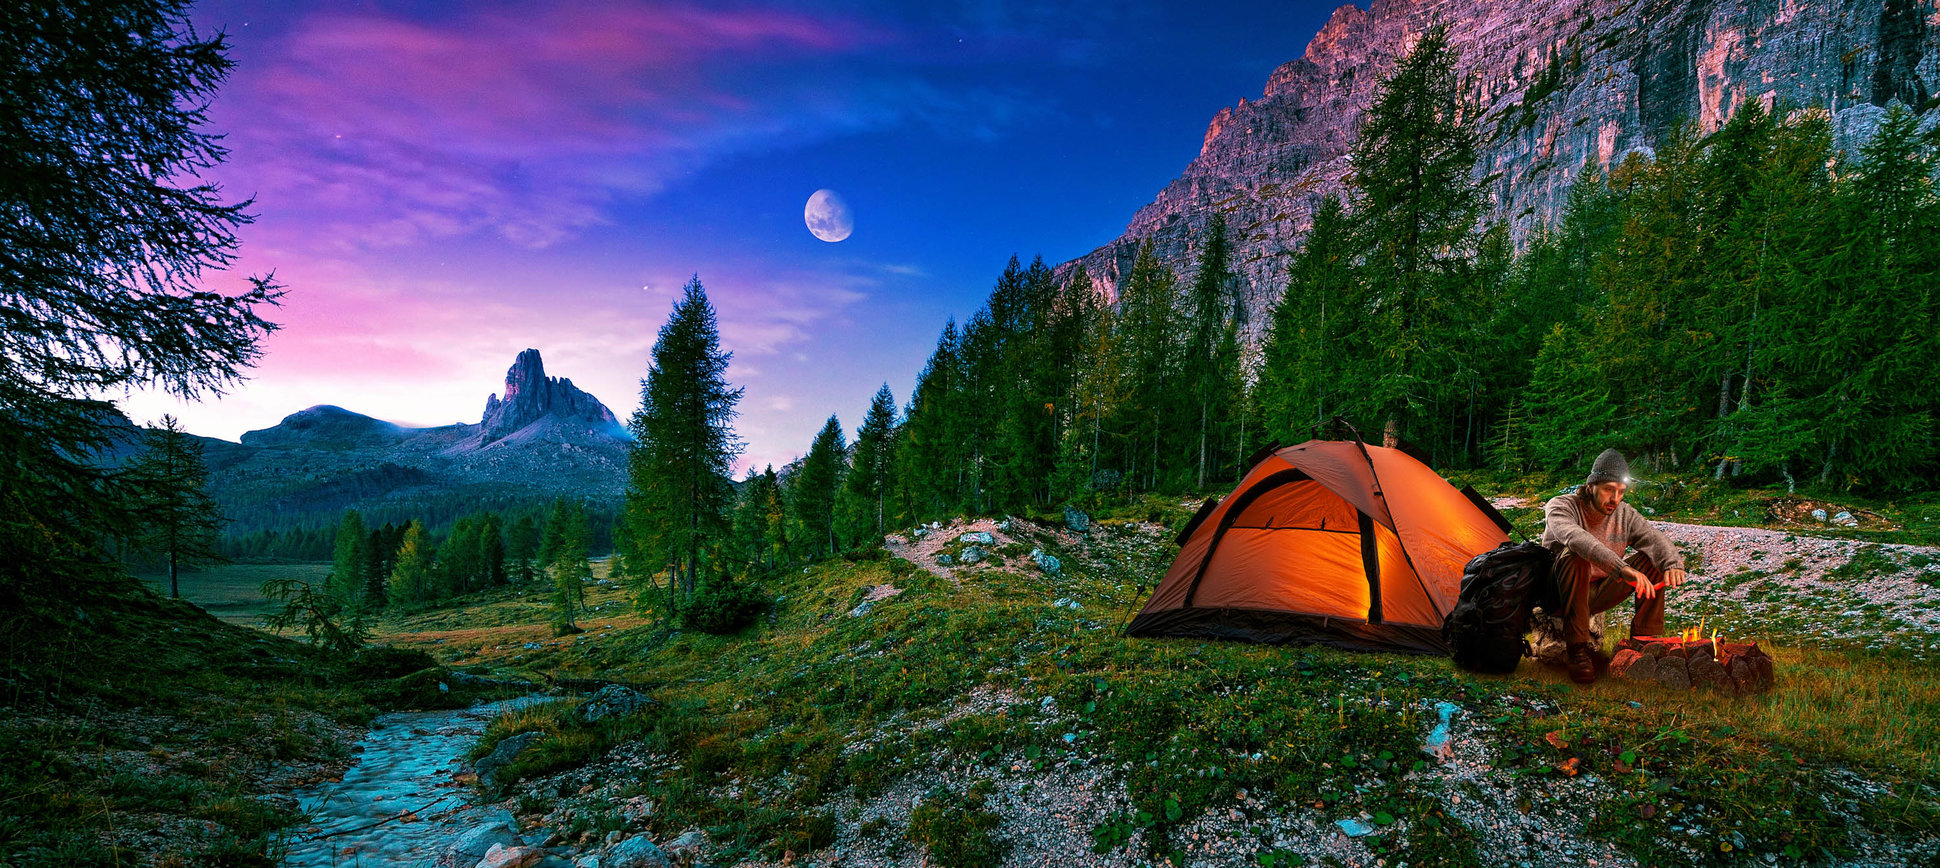 Outdoor-camping 3